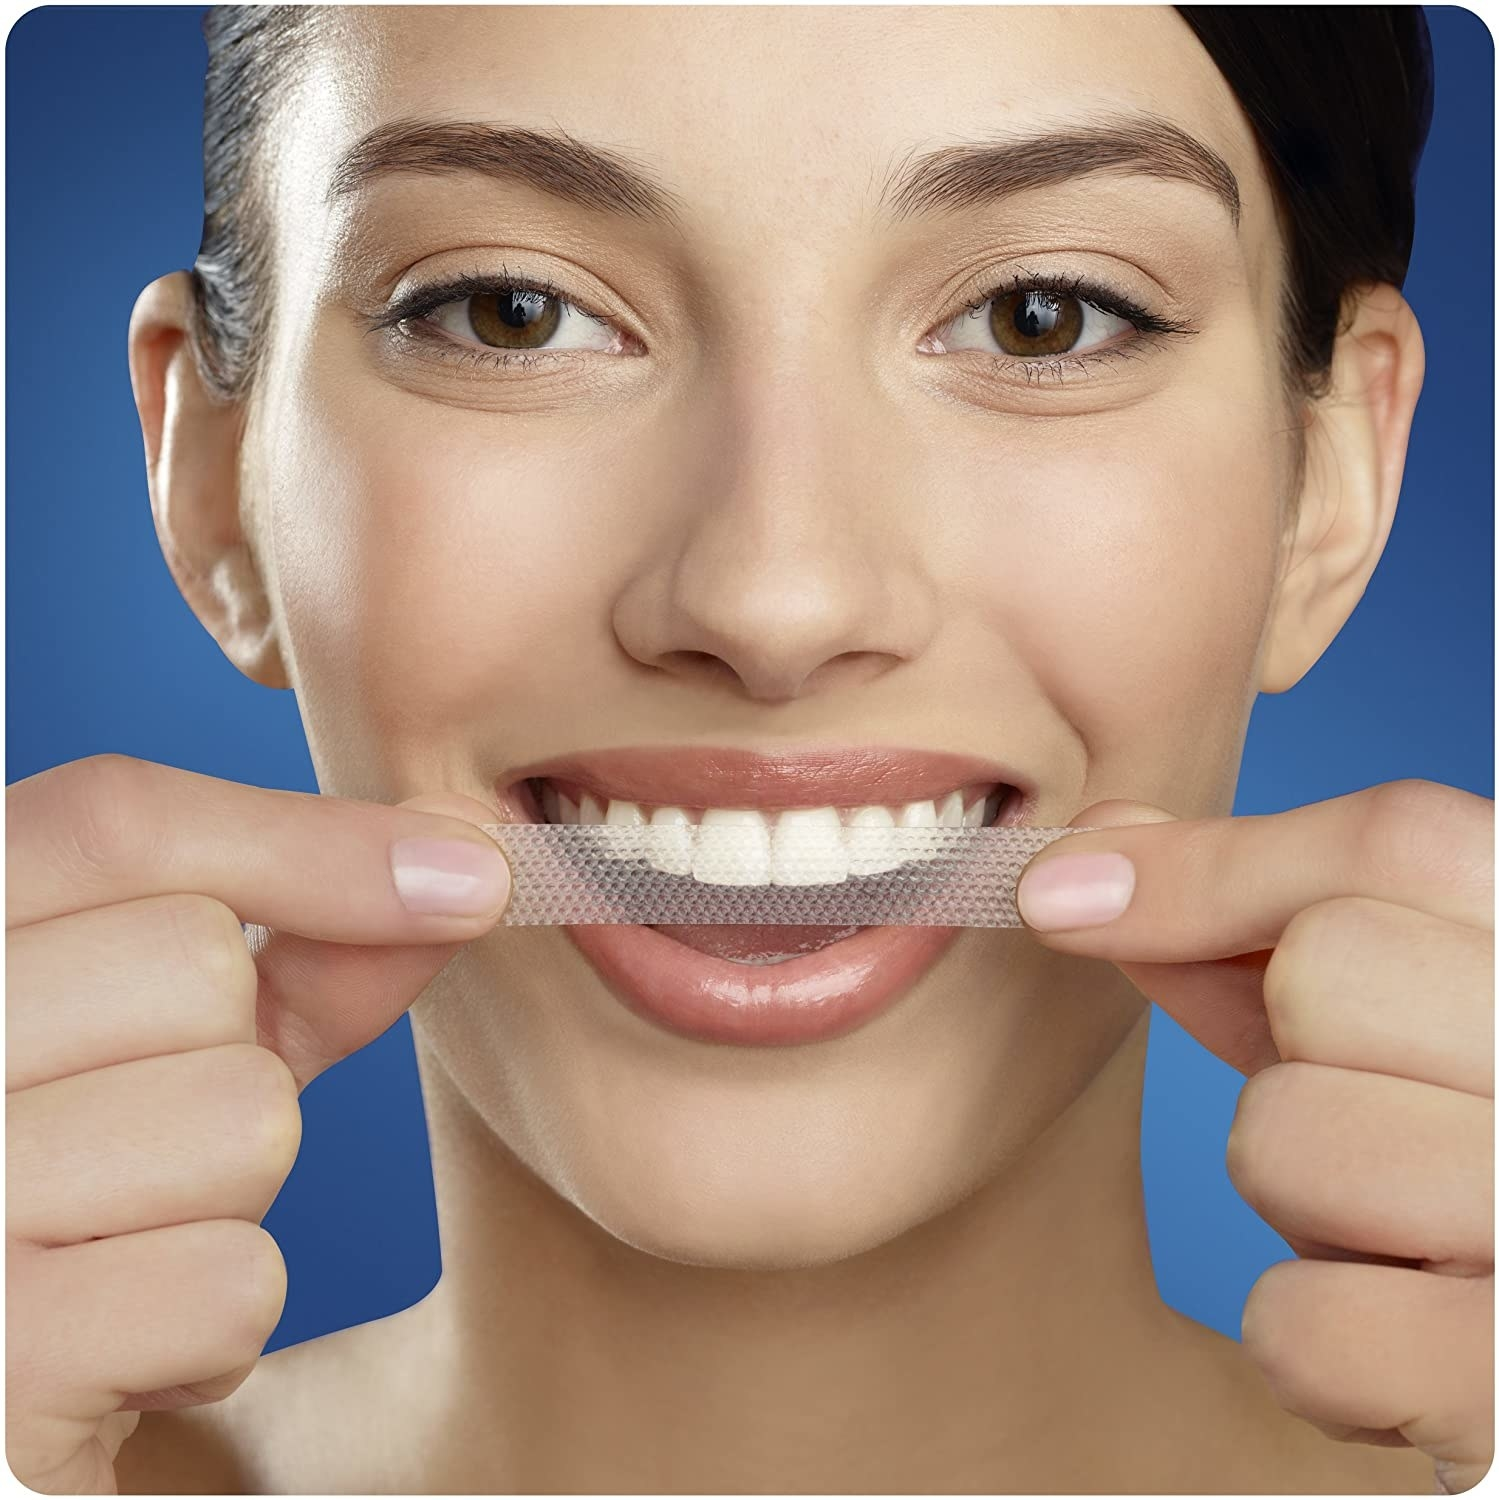 A person placing a whitening strip on their teeth